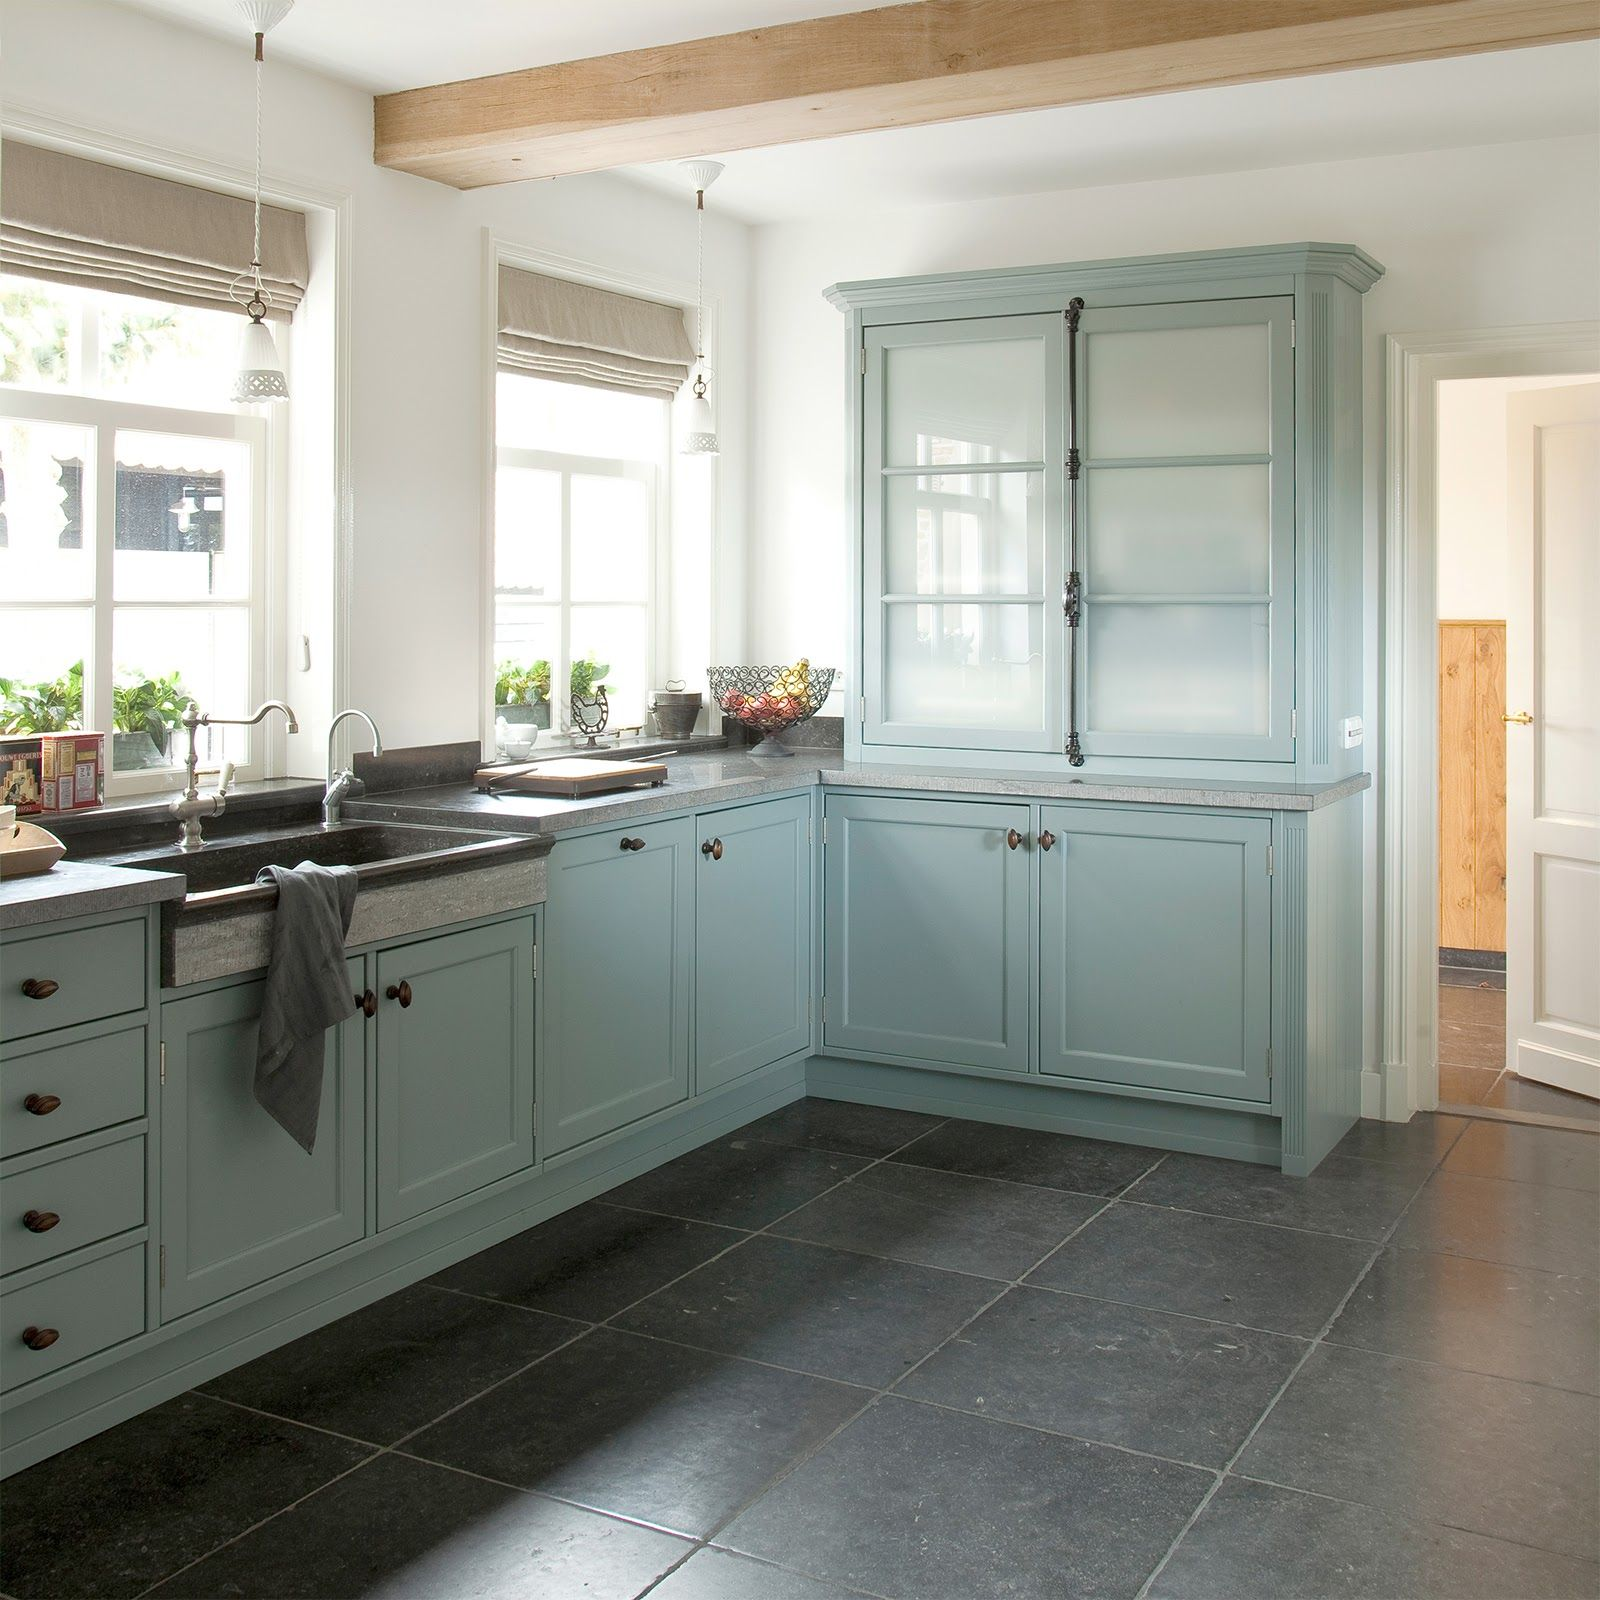 Tasty Turquoise Kitchens Love The Large Grey Slate Tiles On Floor